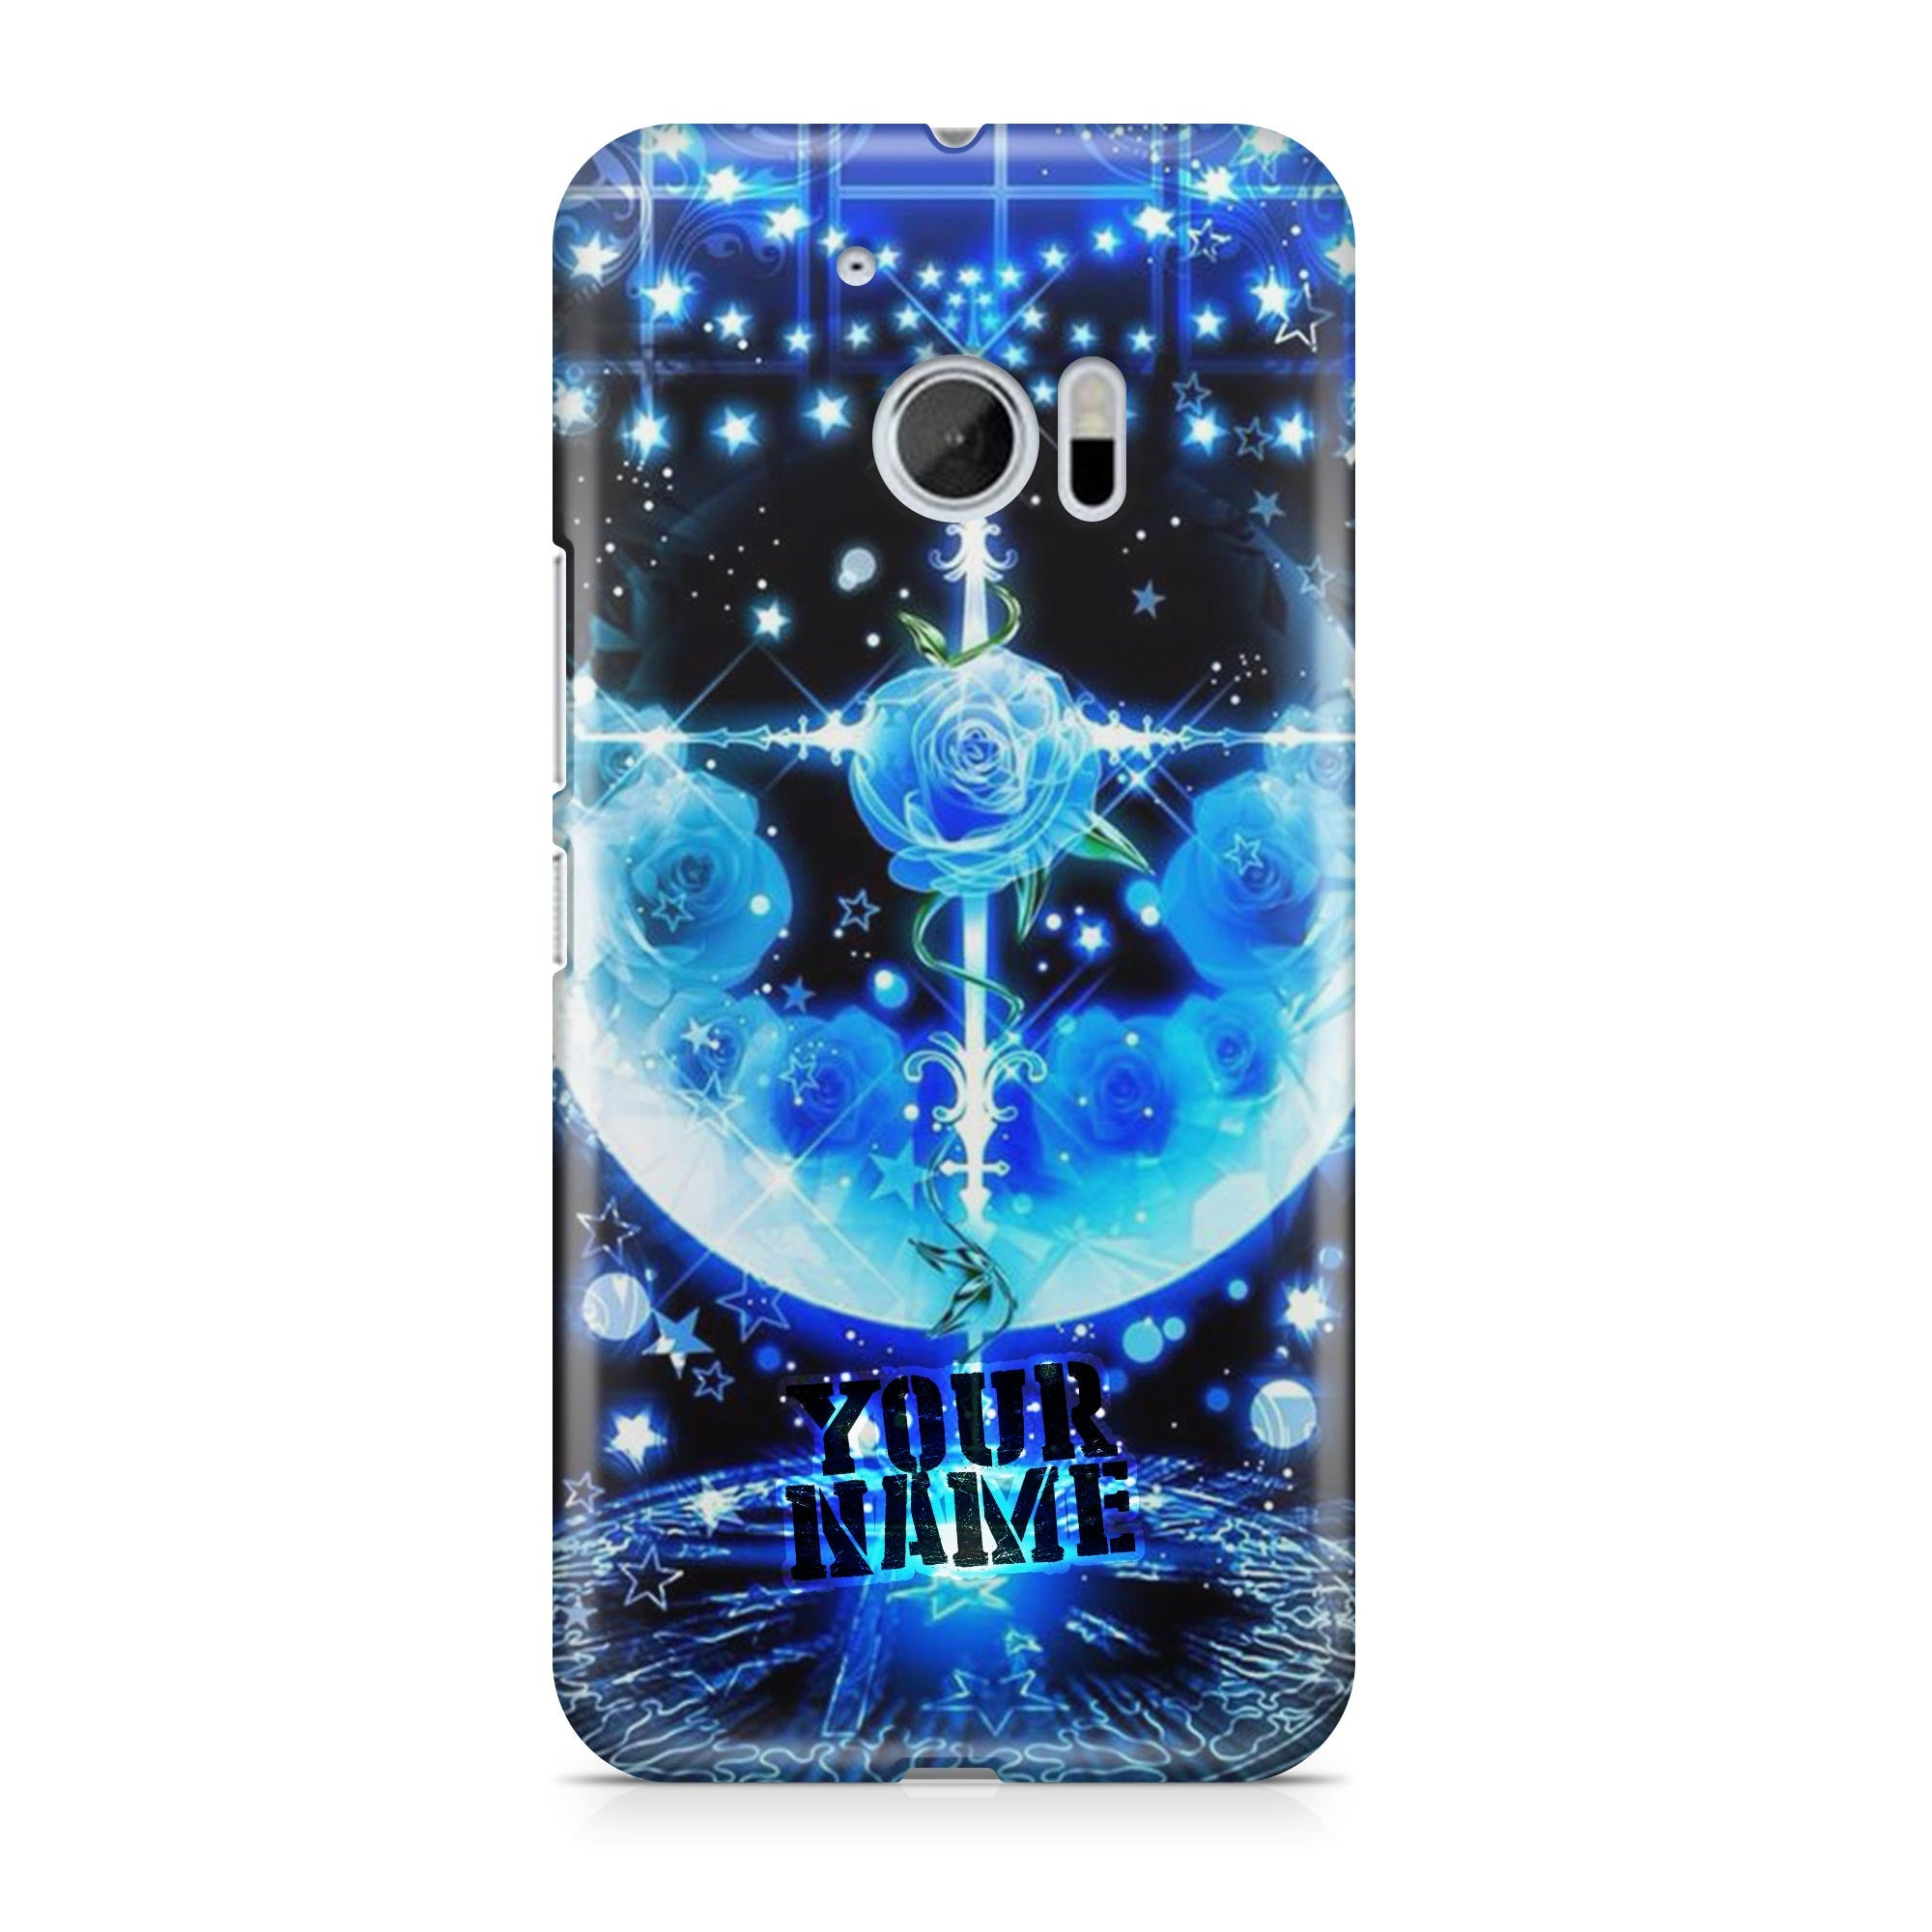 Blue Star Moon Beautiful Light Divine Space Galaxy Stary Universe Phone Cases Cover